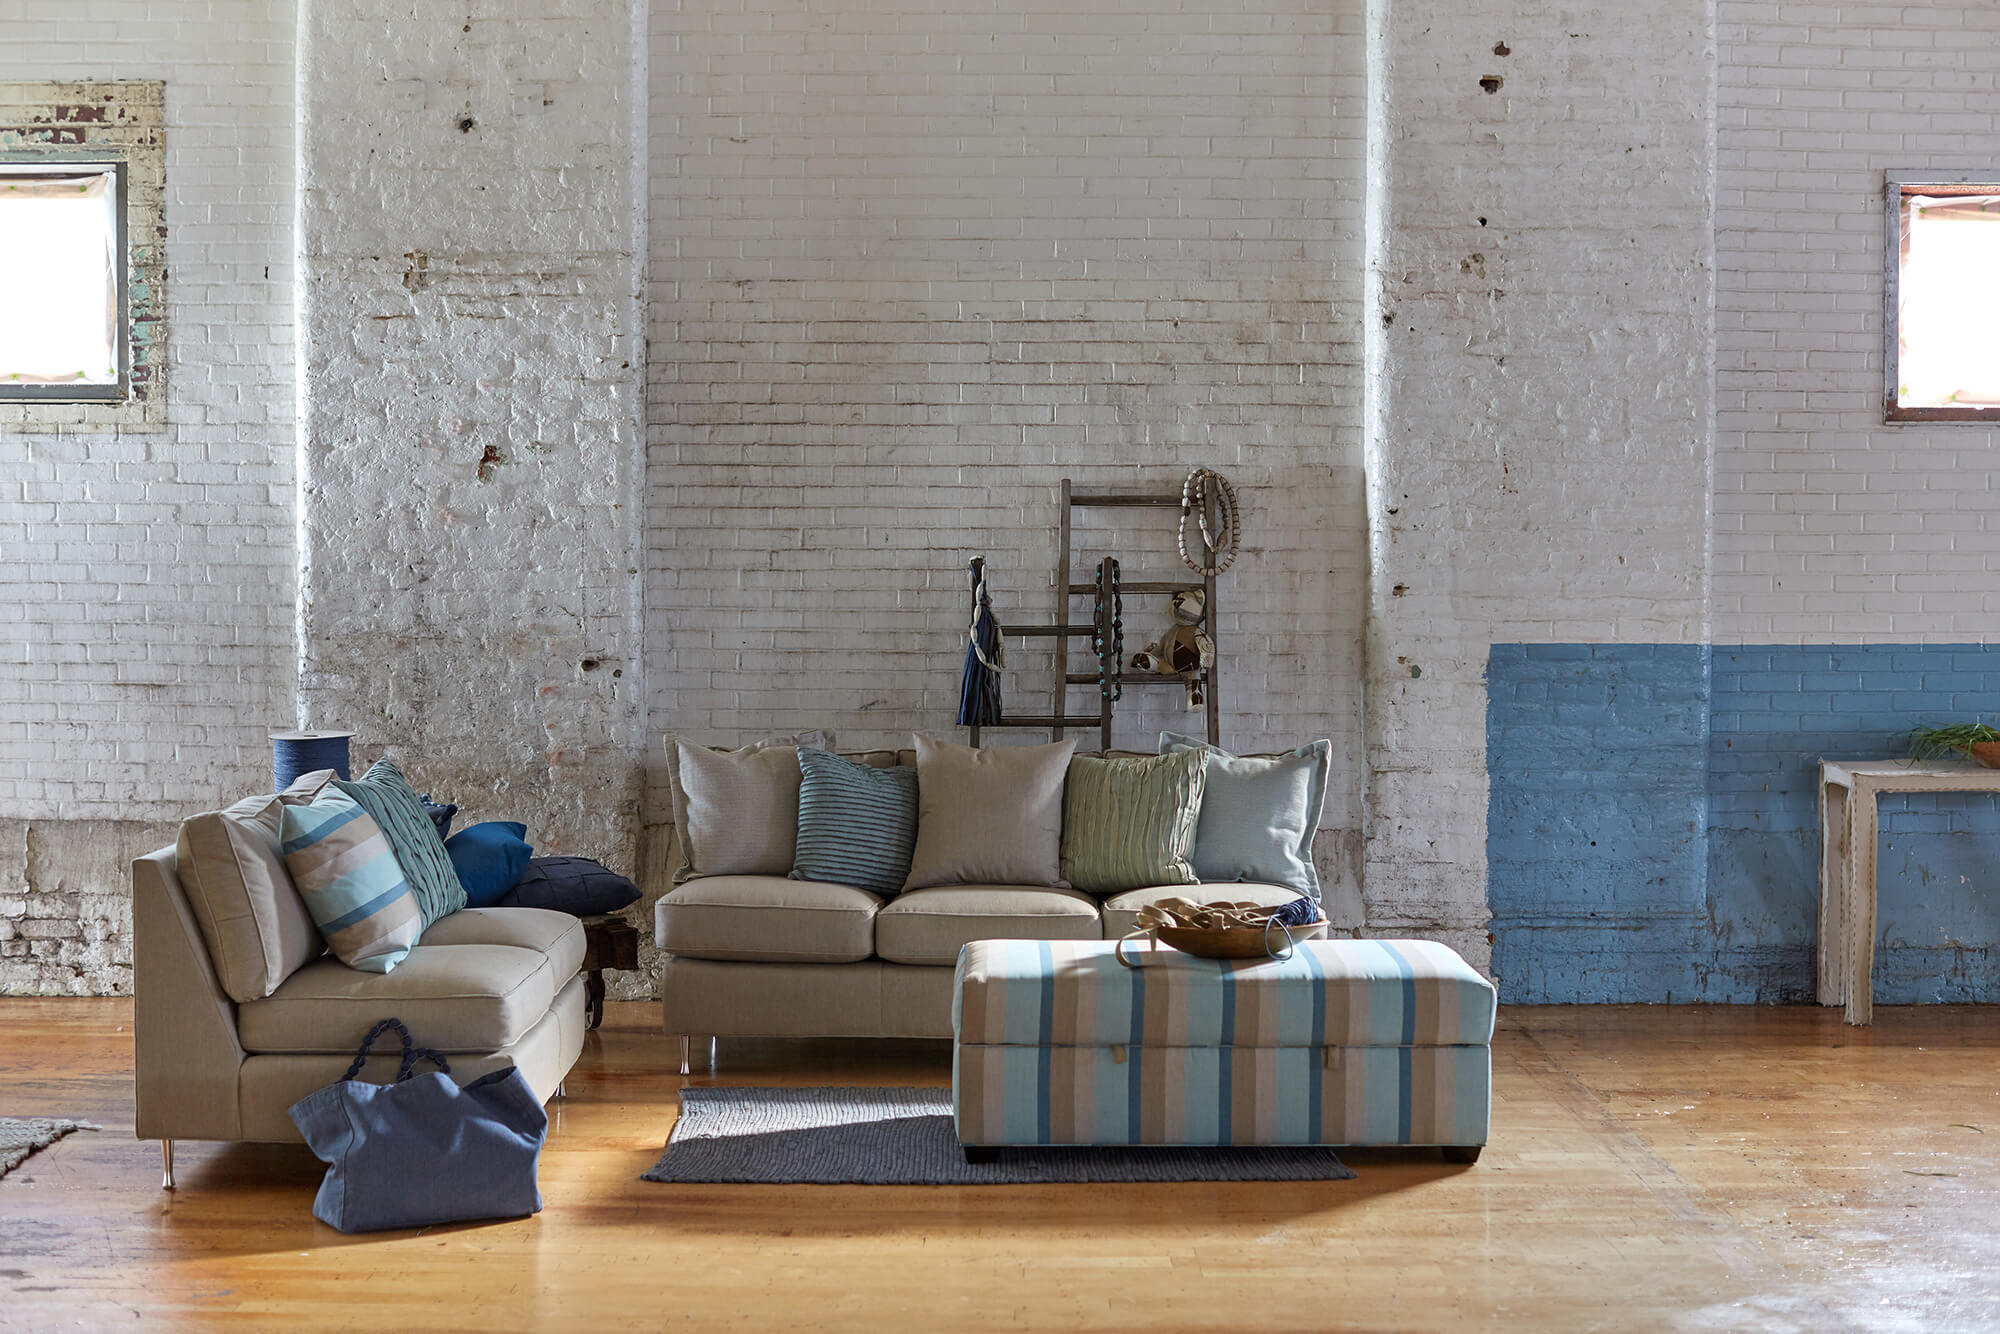 Rustic living room with sofas and accent ottoman with blue stripes